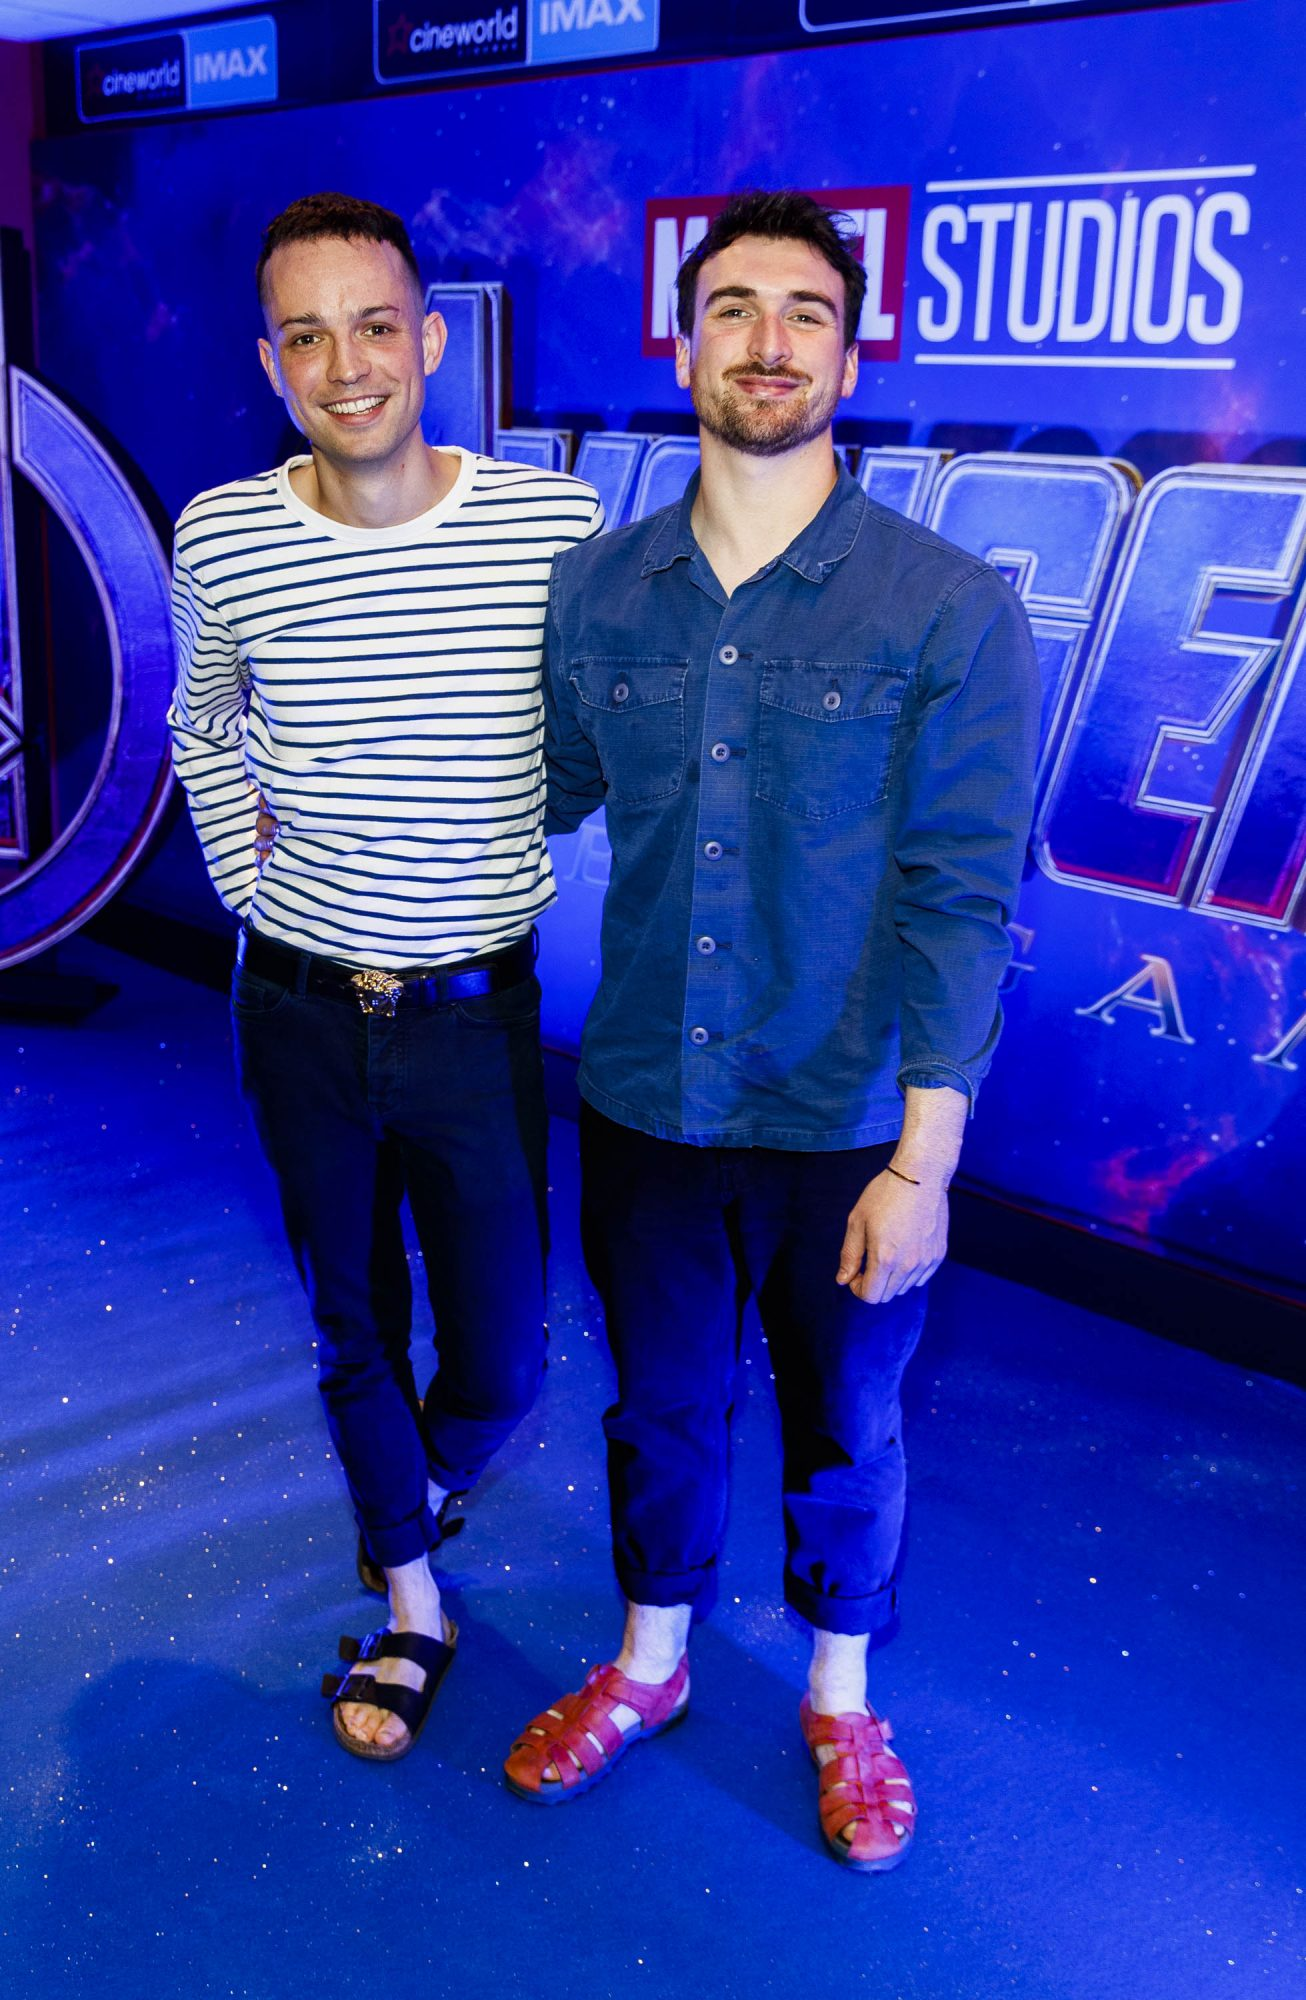 James Kavanagh and Will Murray pictured at the special preview screening of Marvel Studios' Avengers: Endgame at Cineworld Dublin. Picture by: Andres Poveda